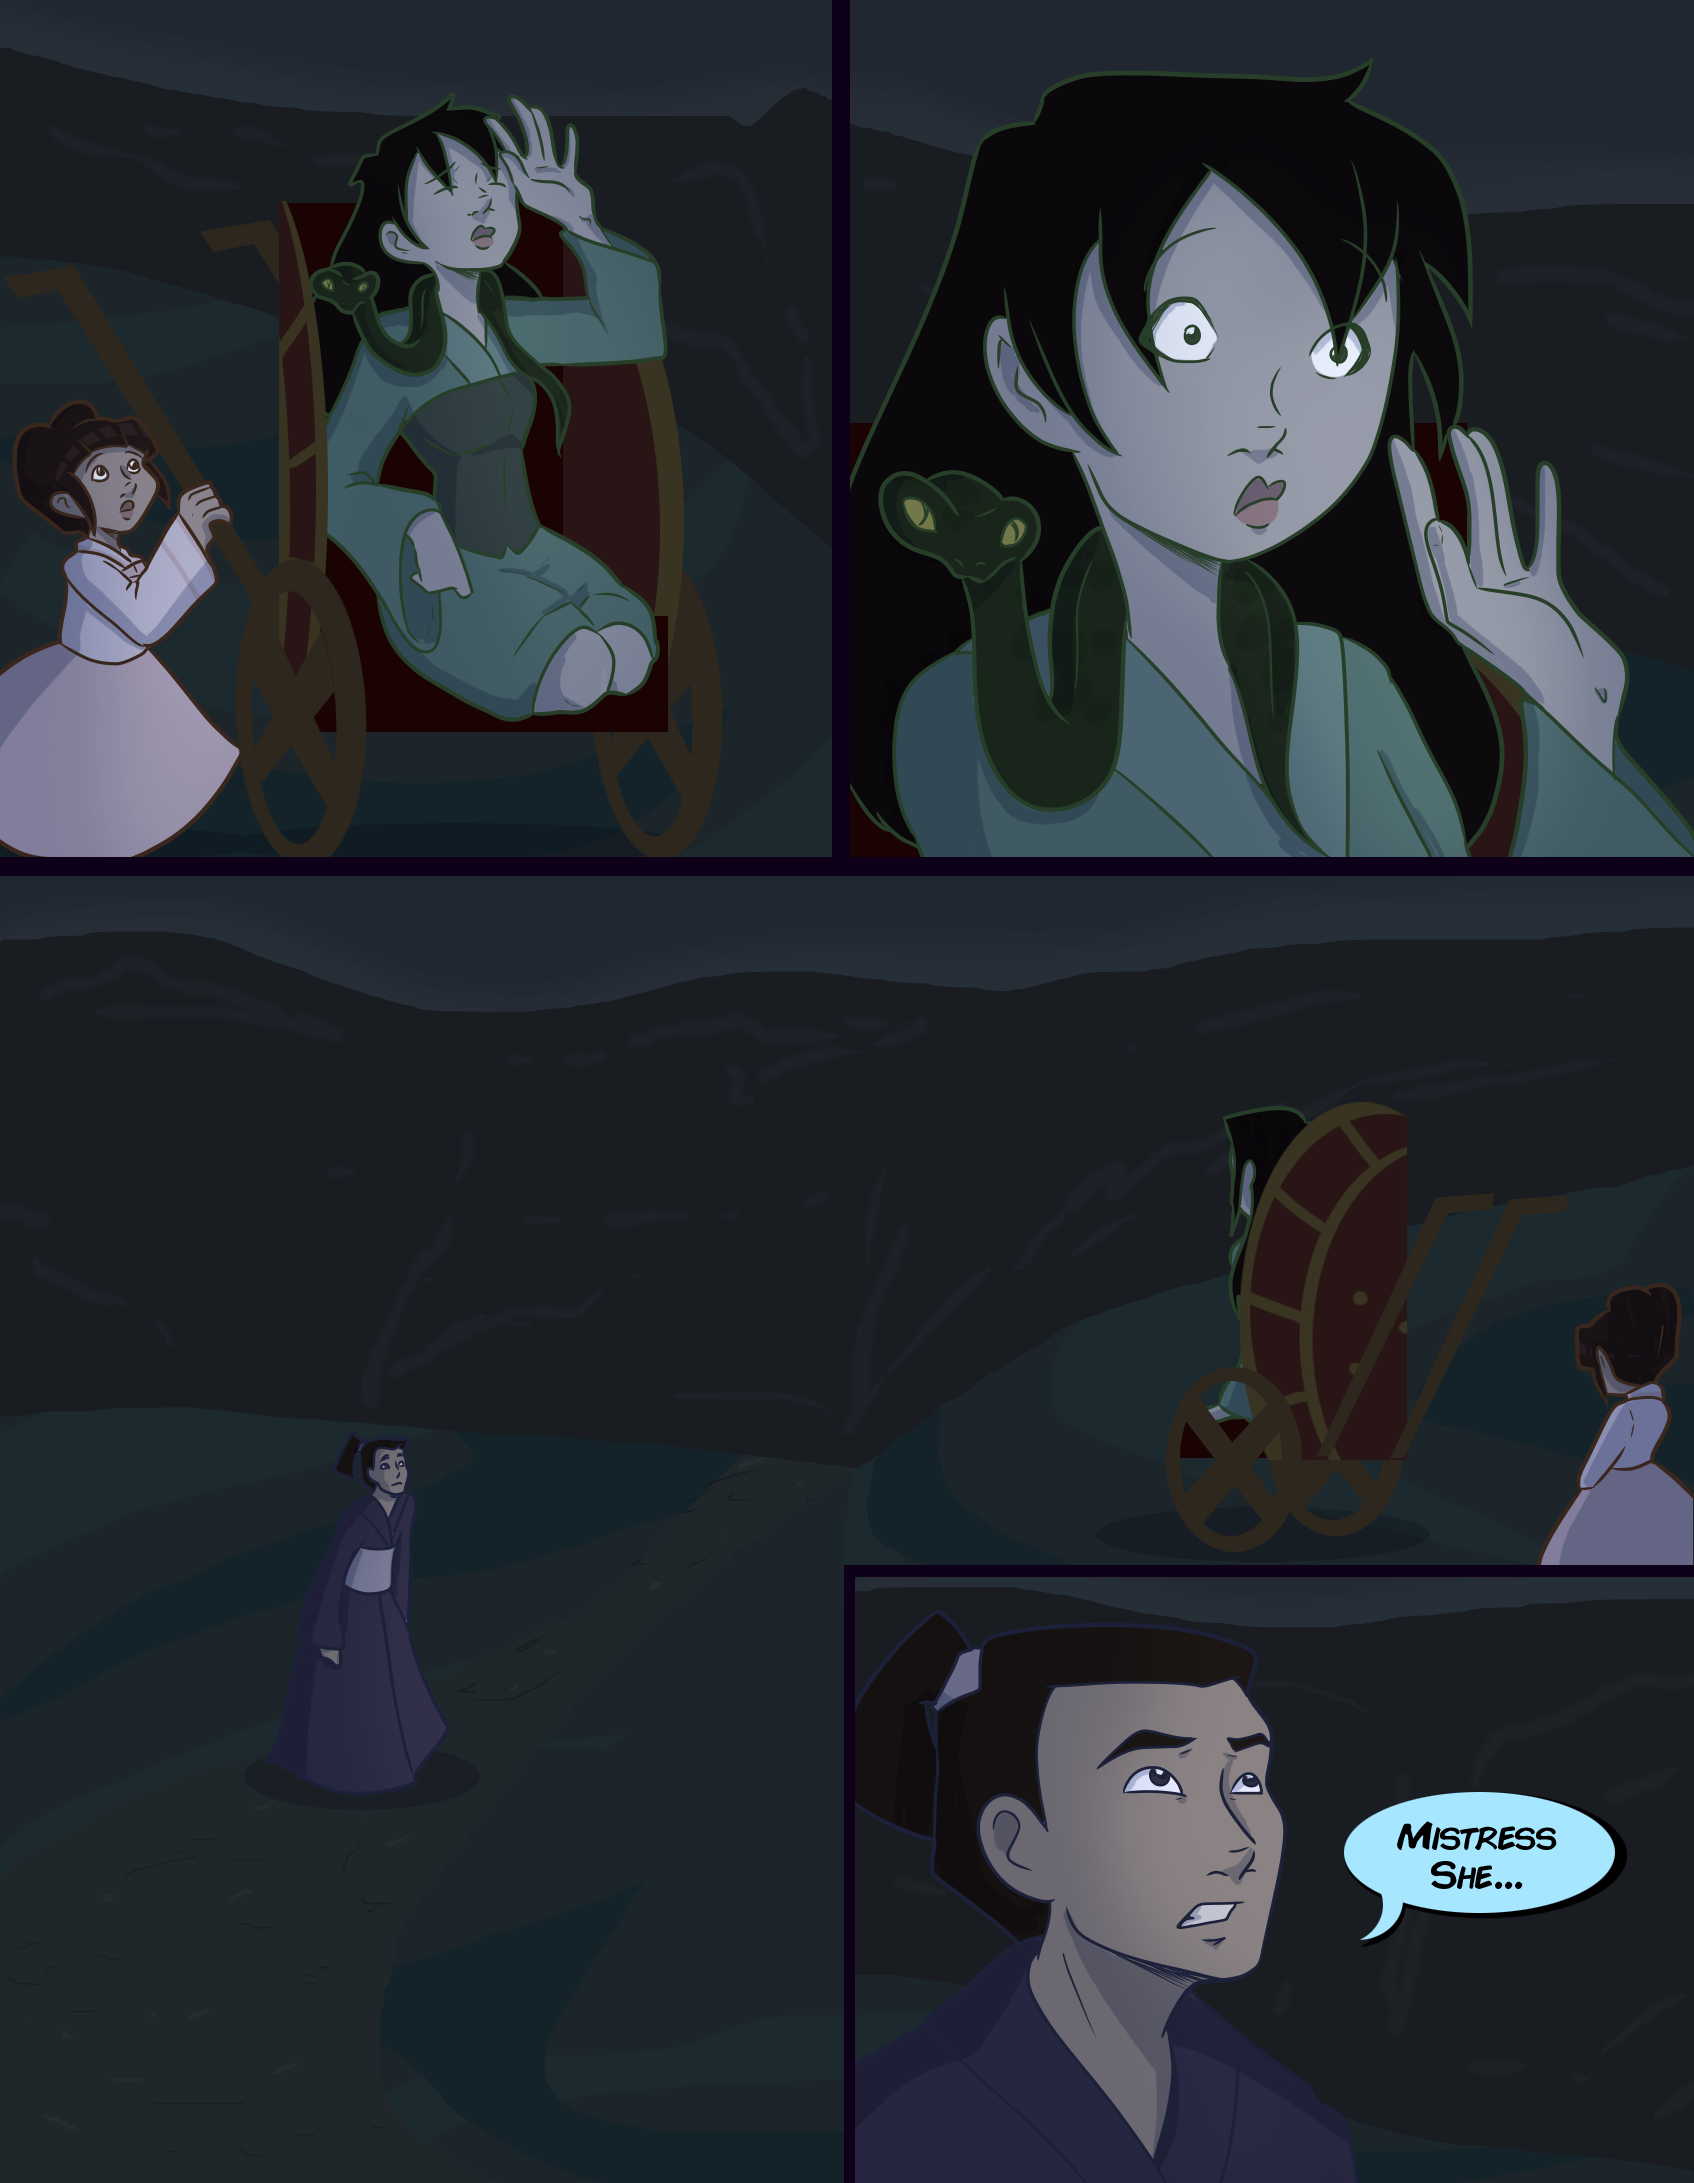 Patricia: Page 138